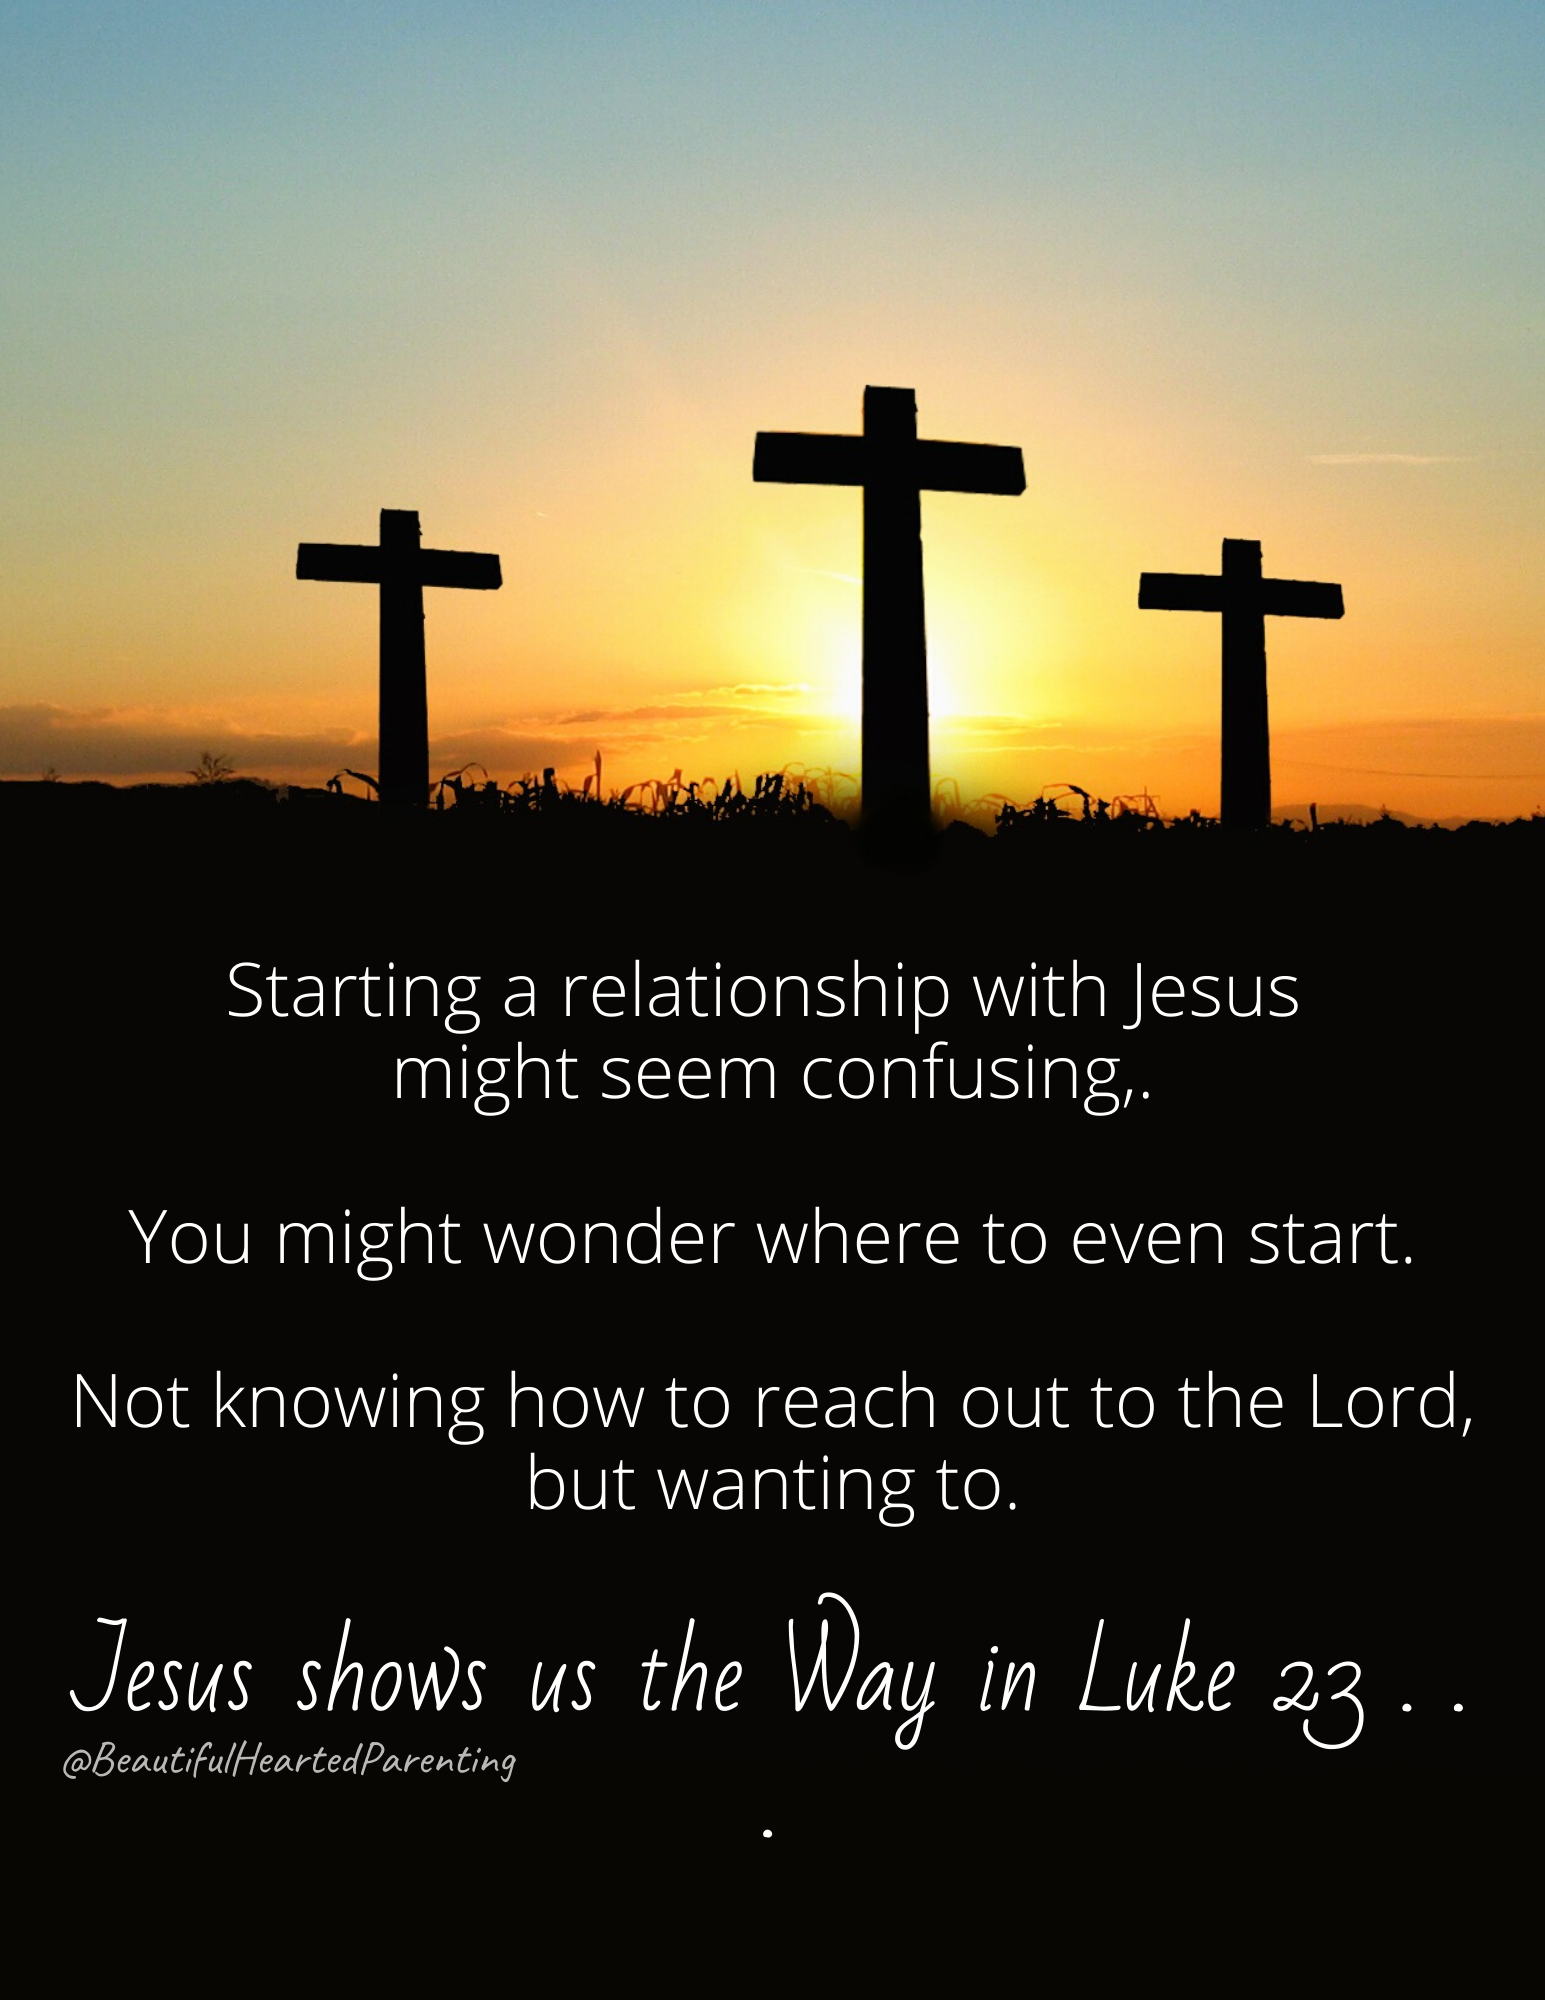 Are you feeling hindered in starting a relationship with Jesus? Wondering where to even start? Not knowing how to reach out to him? Thinking it's too confusing to begin? When Jesus was on the cross, a criminal-2